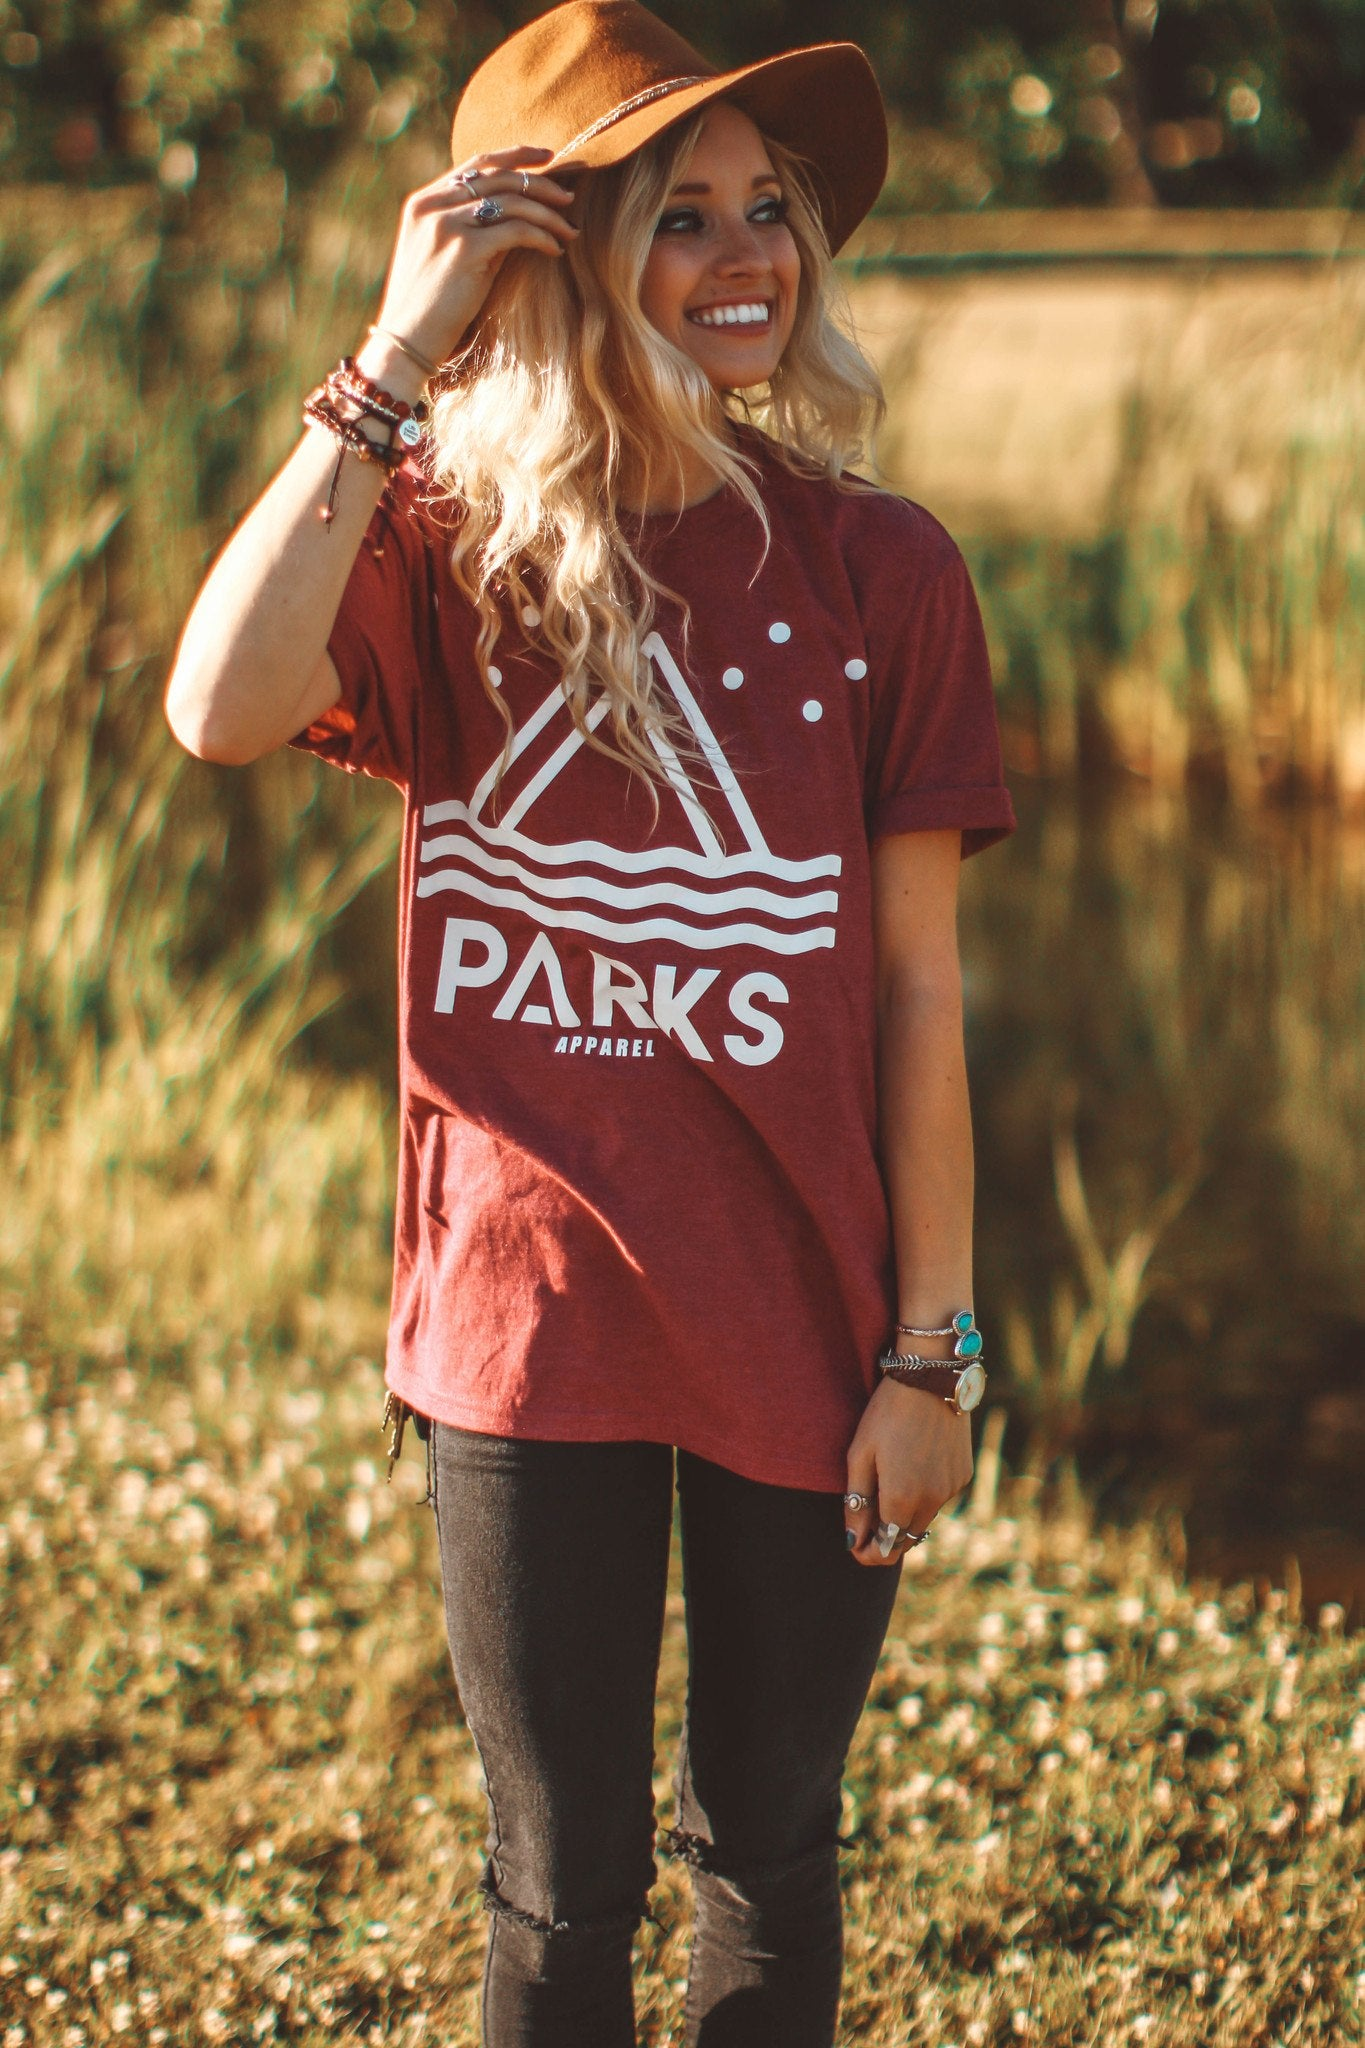 The Parks Classic Tee - The Parks Apparel